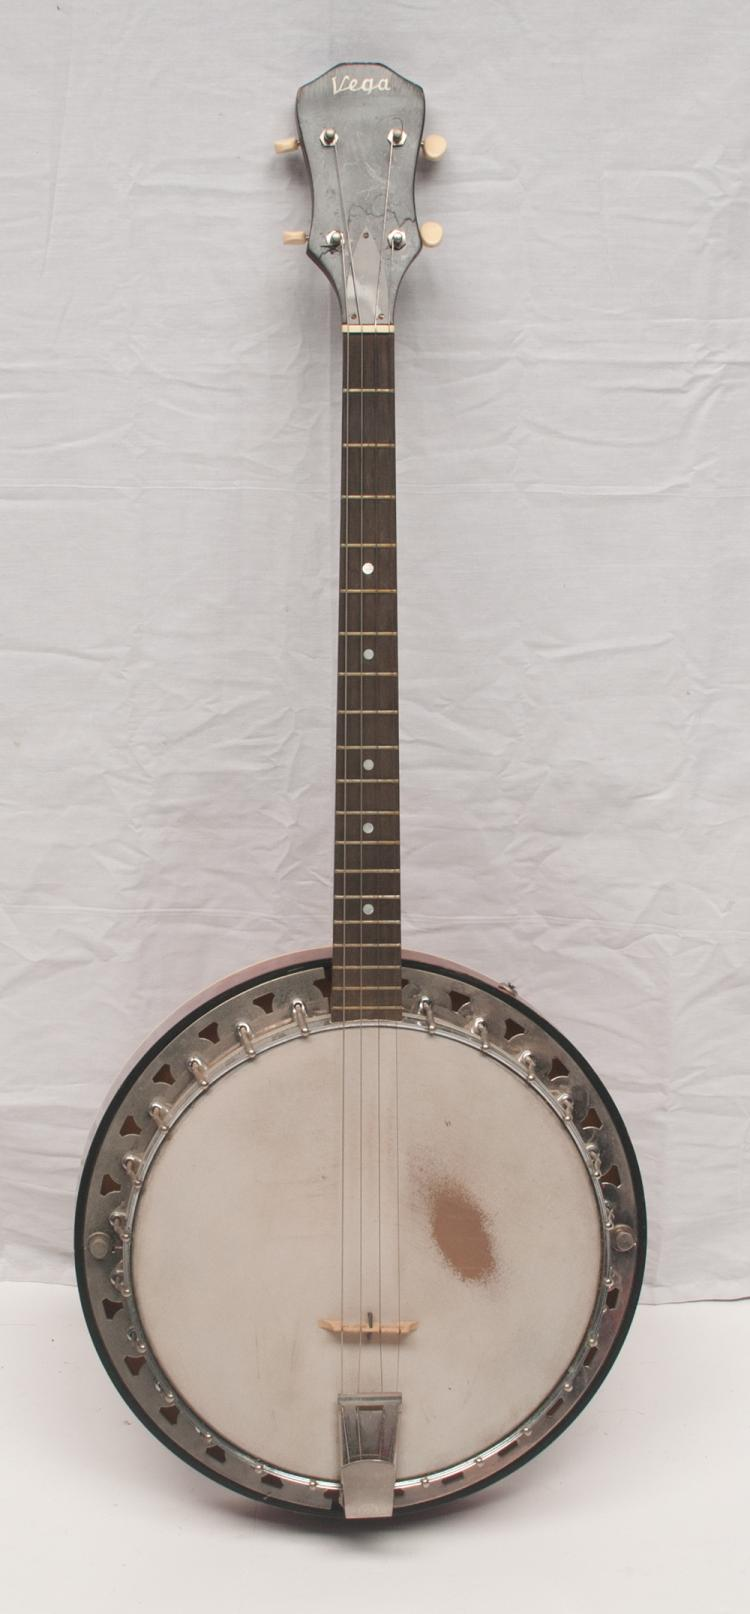 Banjo - Vega (Ranger Tenor) Live Performance/Touring four string, serial #A-127906, owned and played by Tom T. Hall with autographed photo of Tom T. playing the banjo